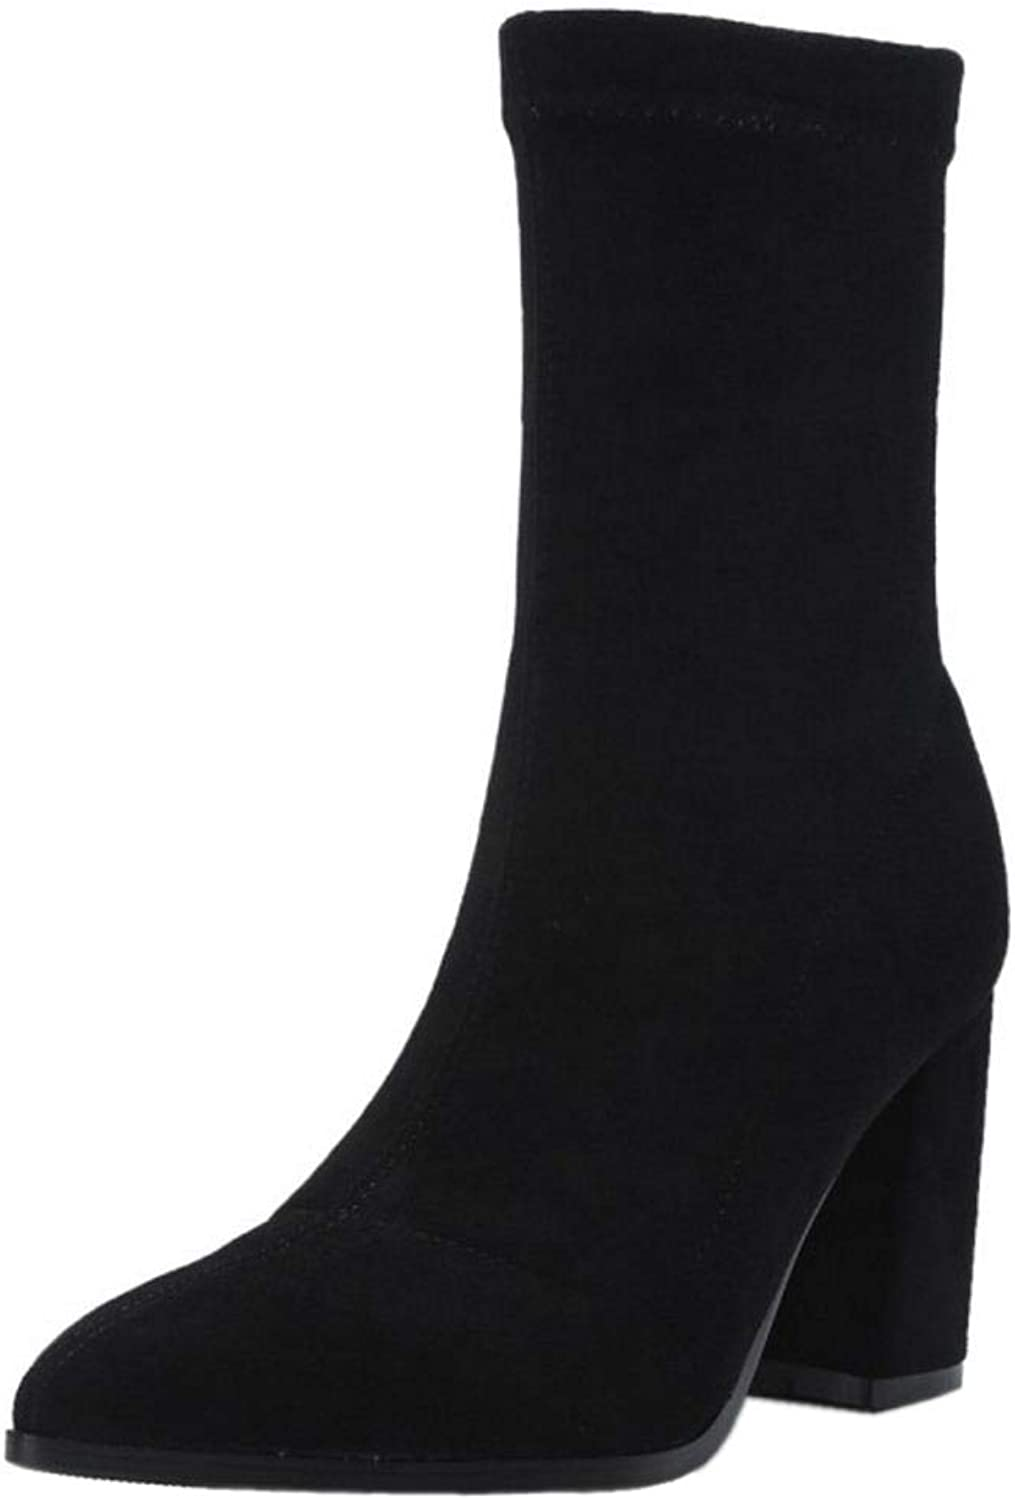 TAOFFEN Women Fashion Block Heel Ankle Boots Pull On